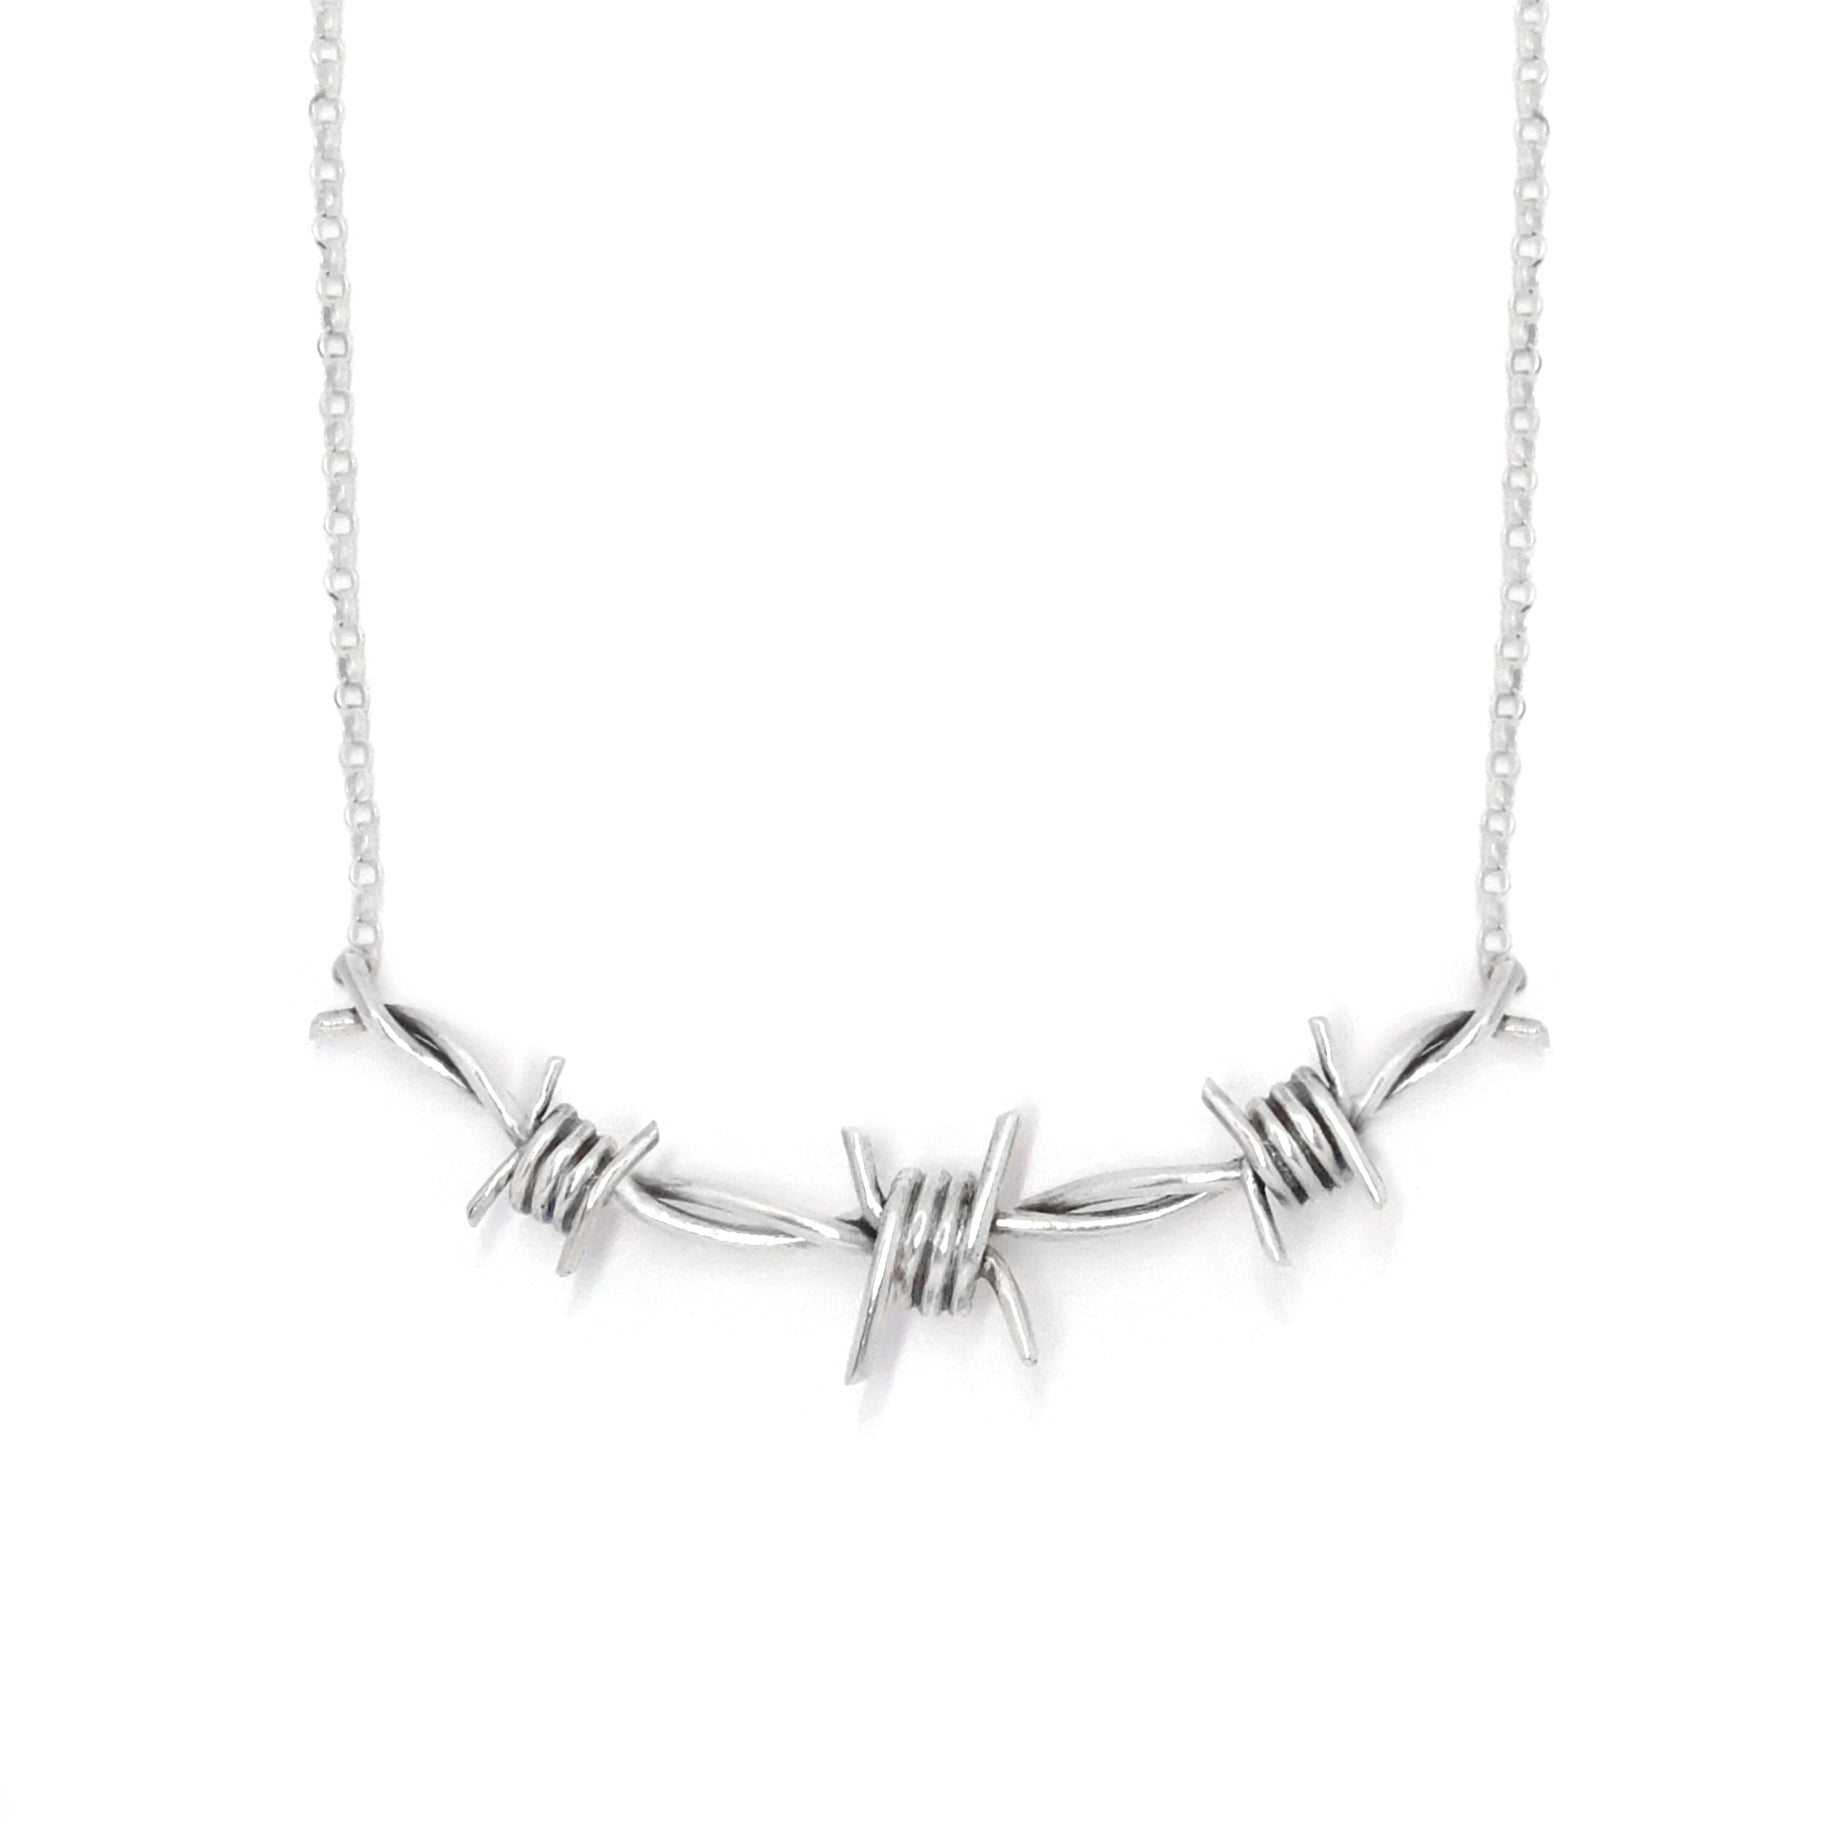 Triple Barbed Necklace